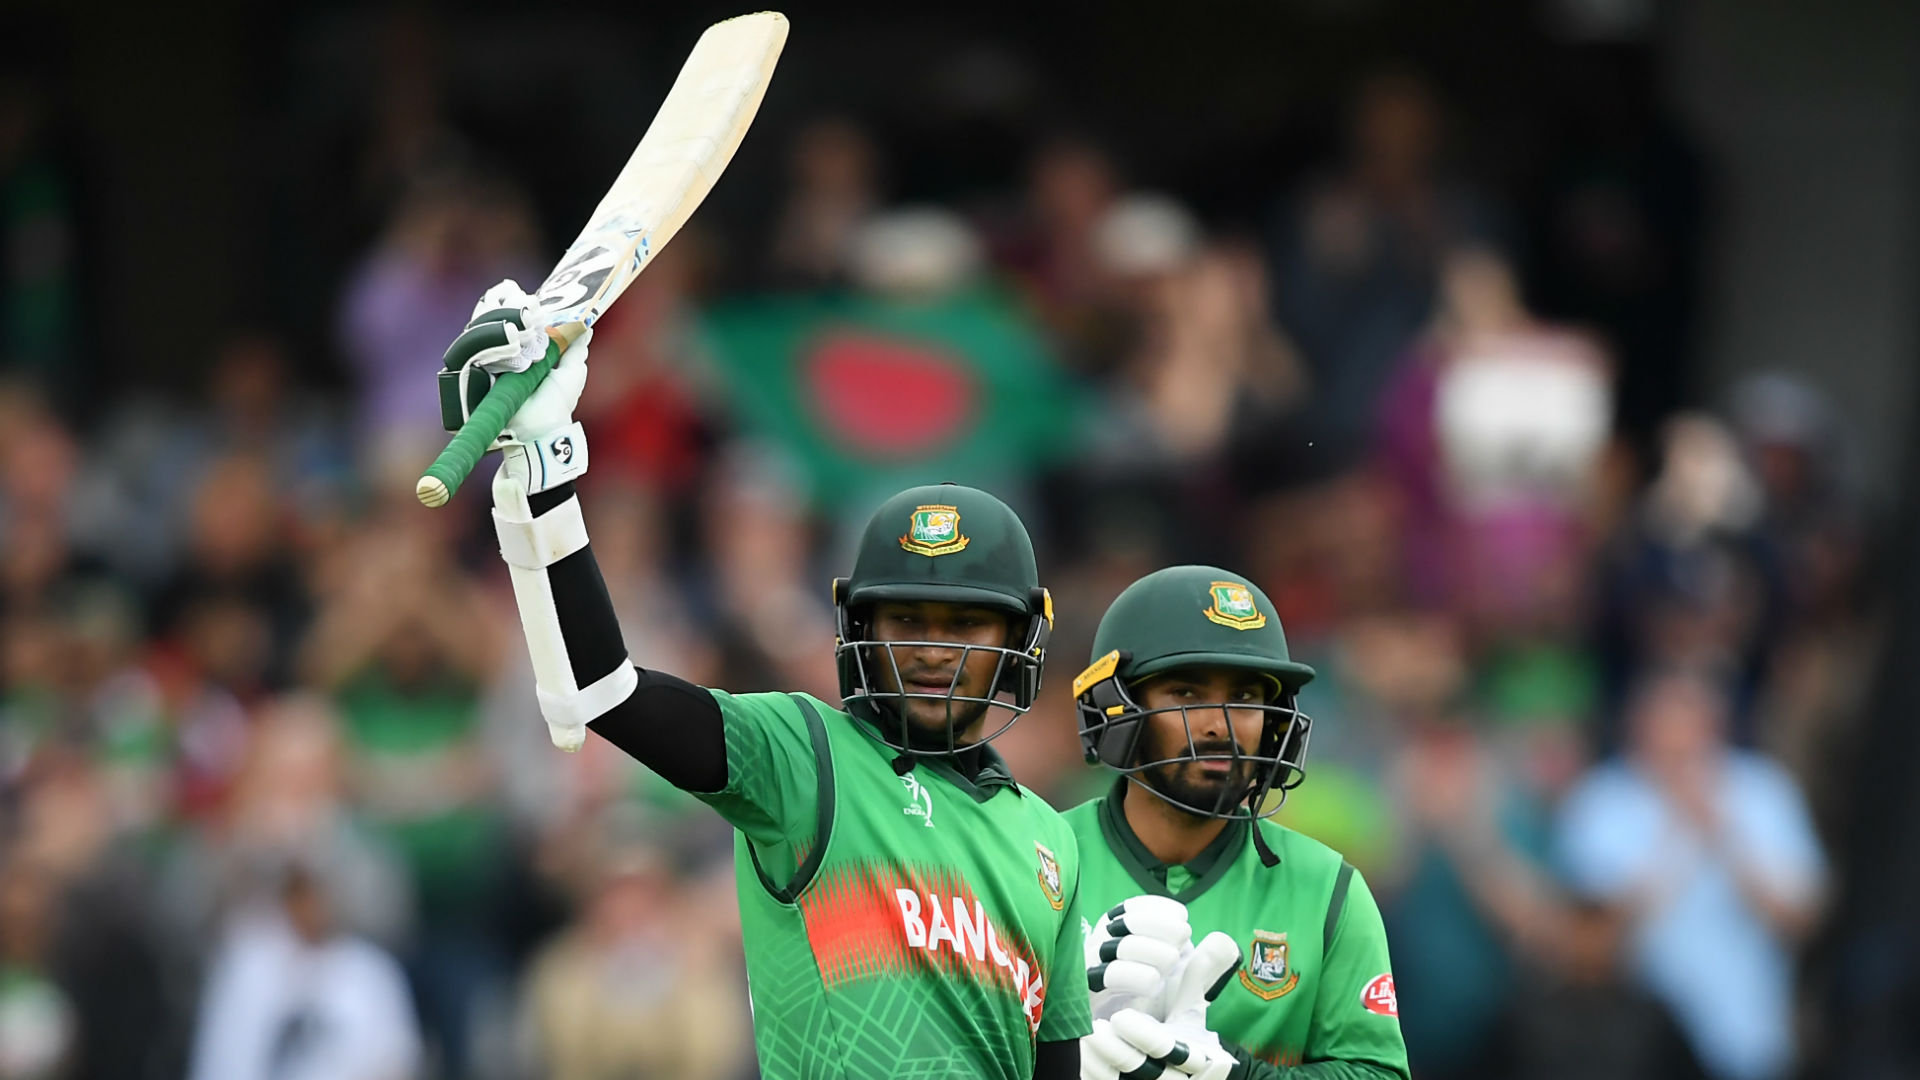 Super Shakib inspires Bangladesh to thumping win over Windies